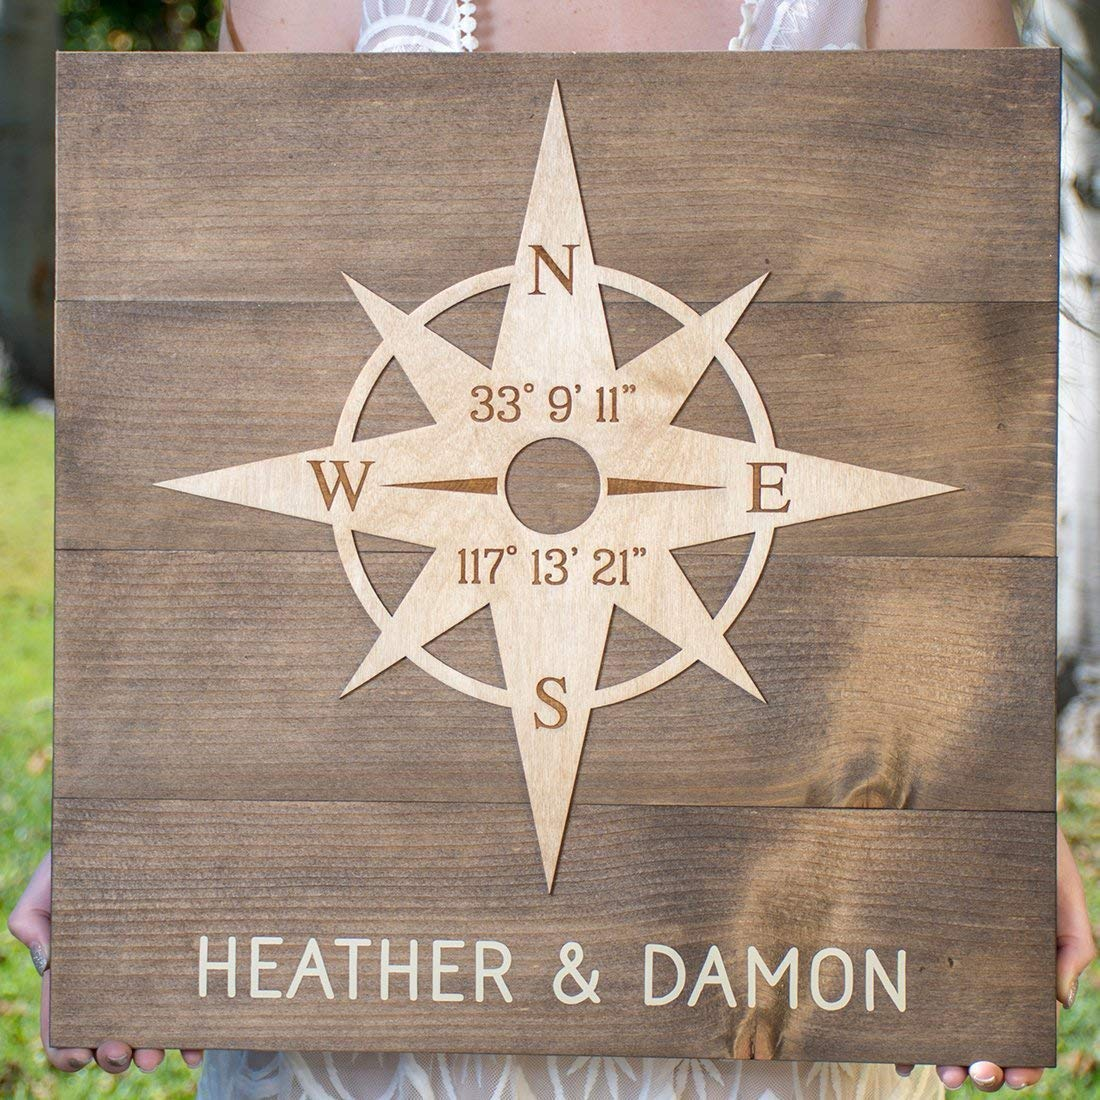 Personalized Wood Sign with Compass Rose Cheap shop Lo and Names Latitude -